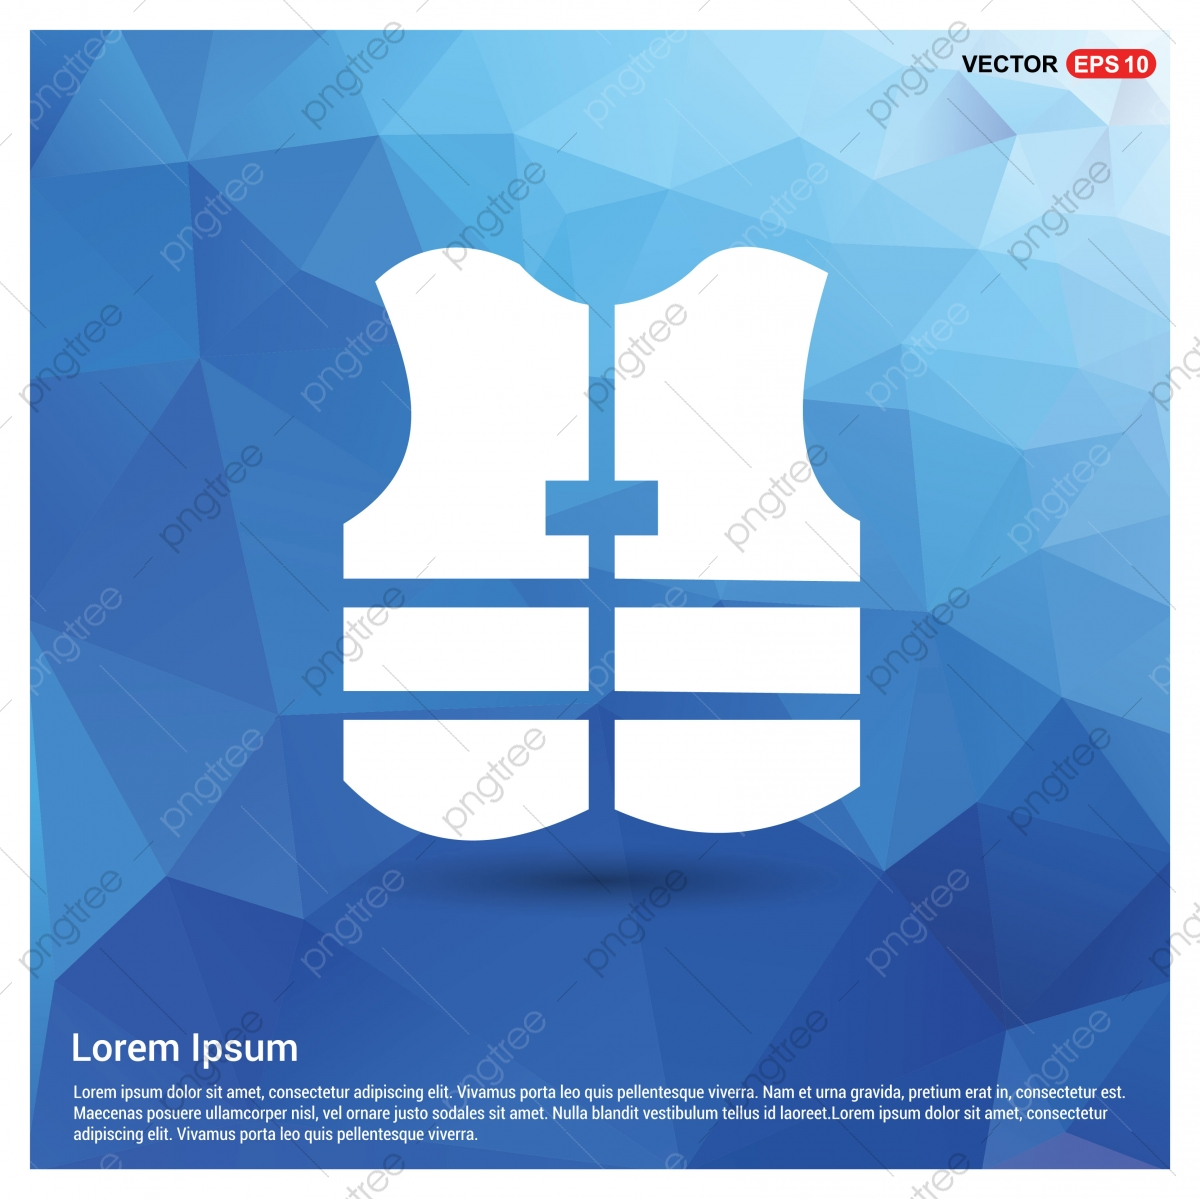 Life Jacket Life Vest Icon Png And Vector With Transparent Background For Free Download